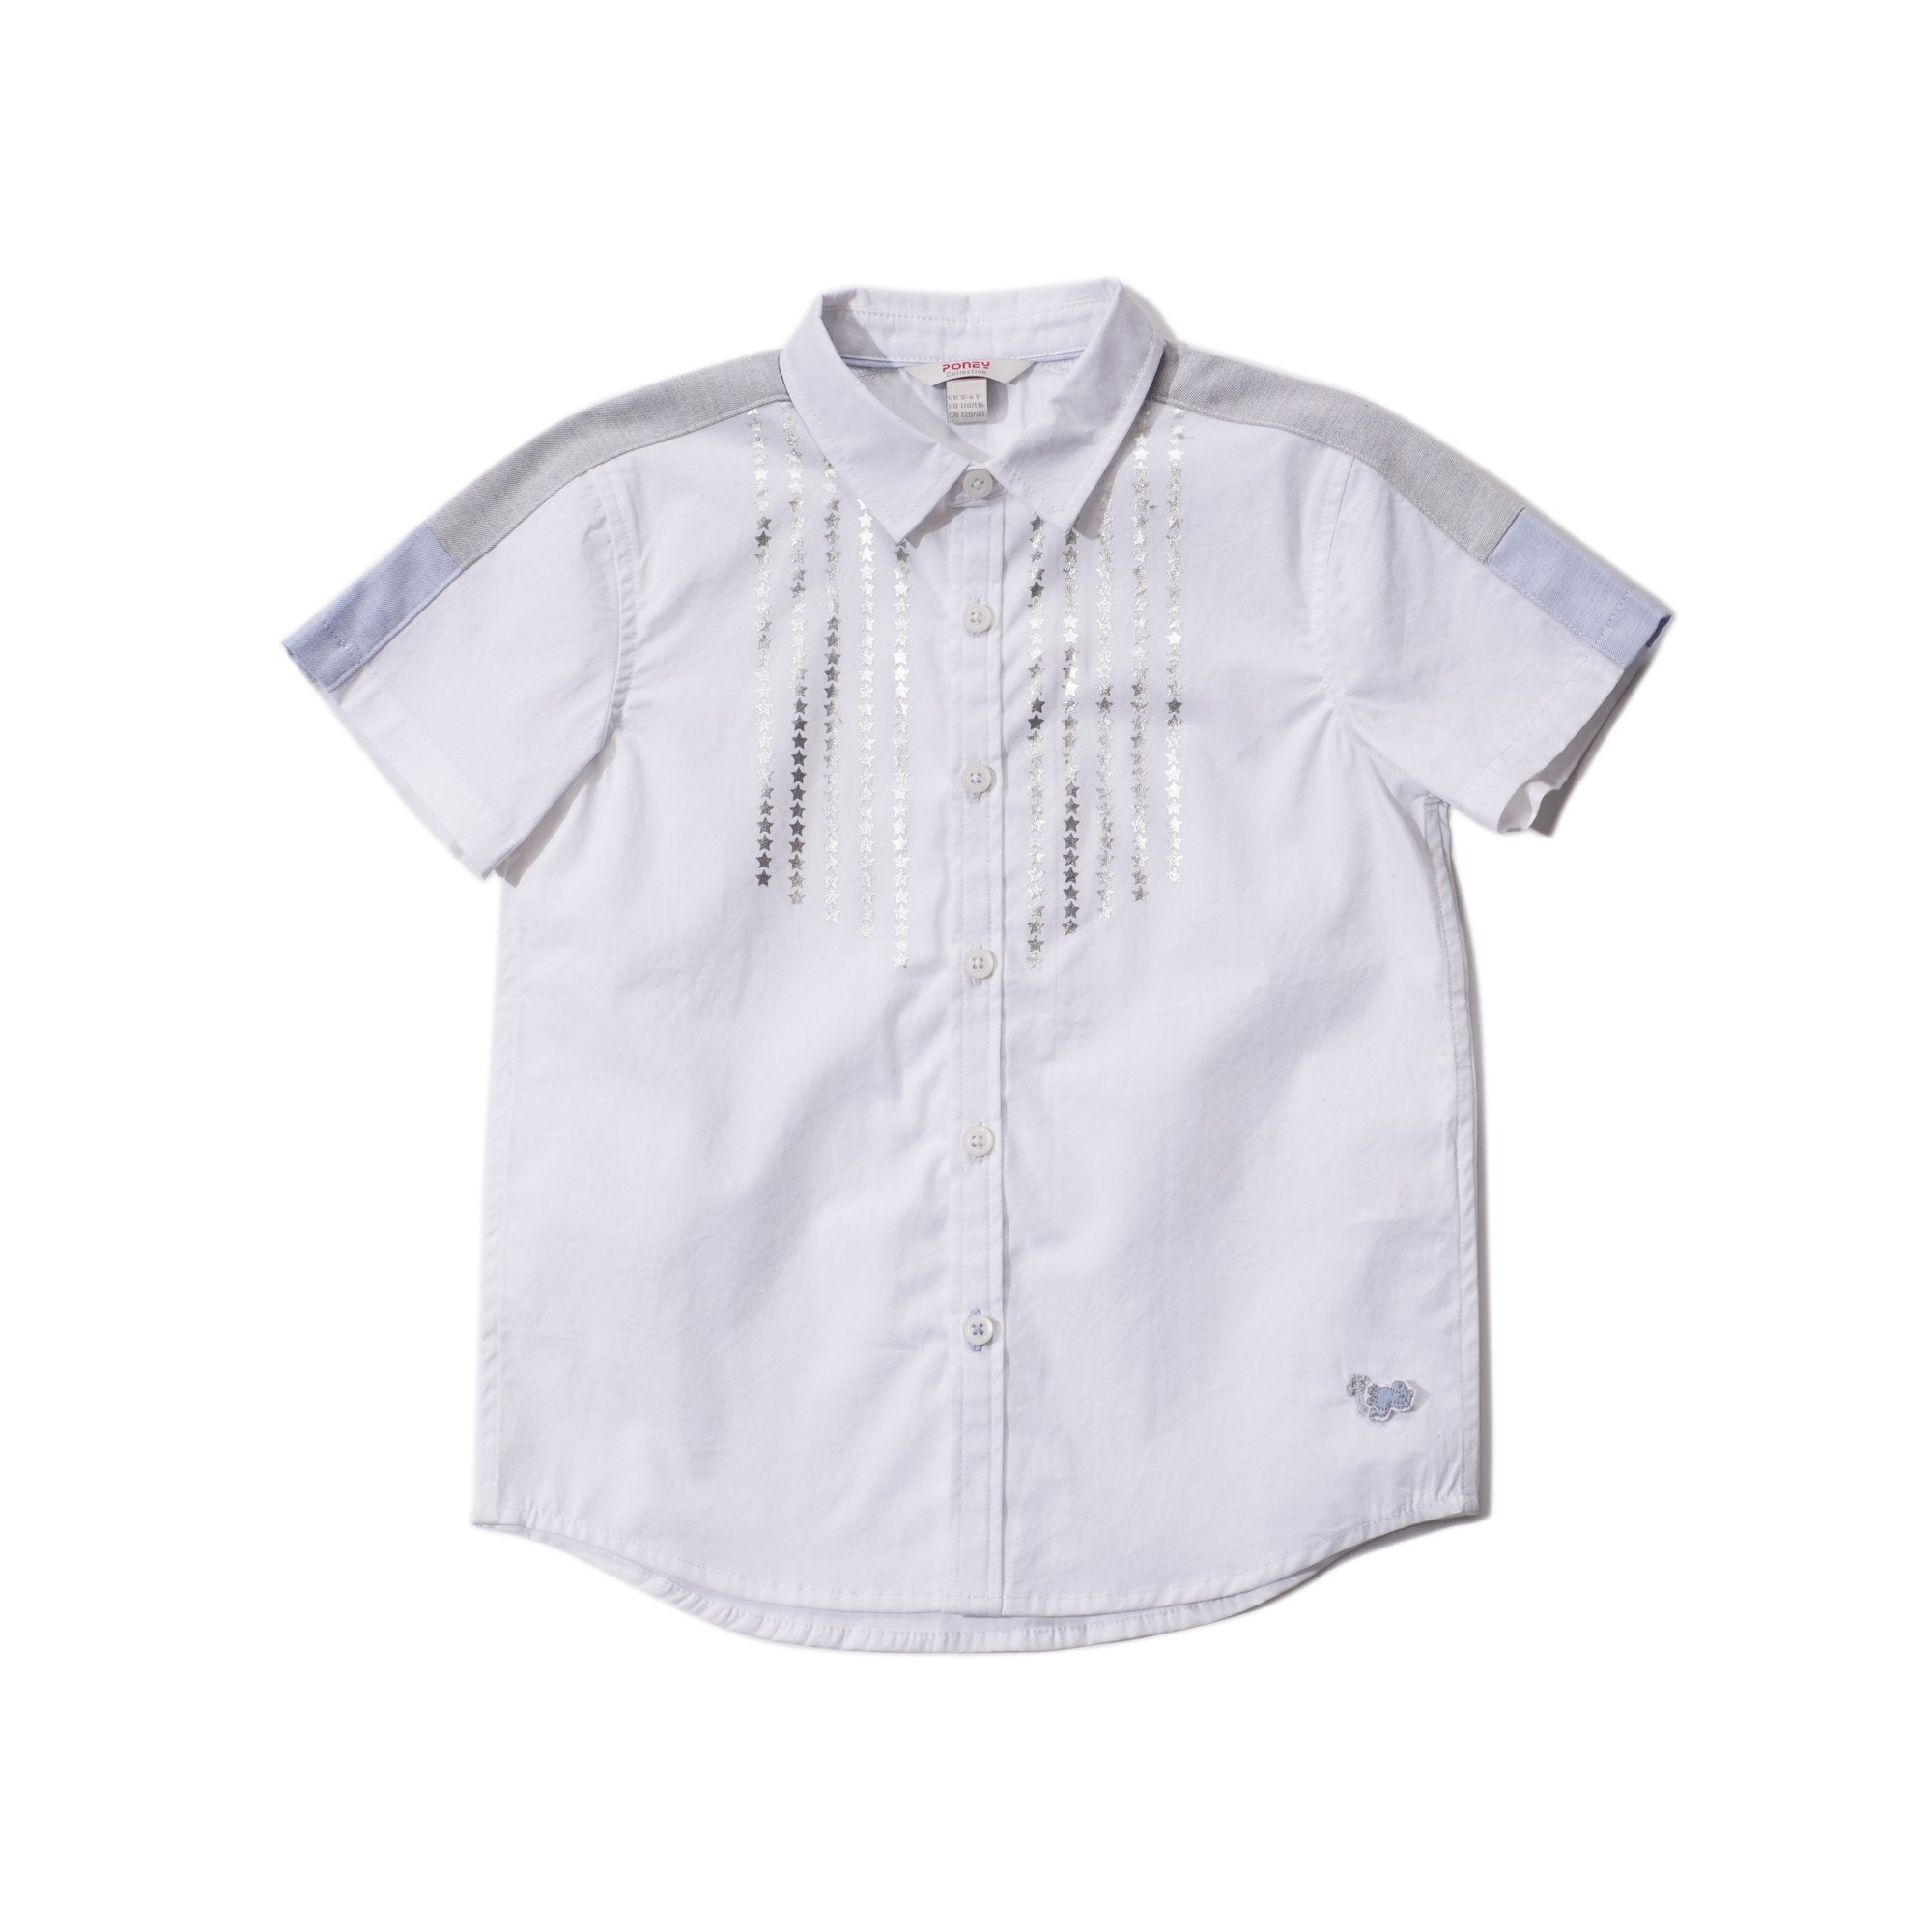 Poney Boys ShortSleeve Shirt 2048